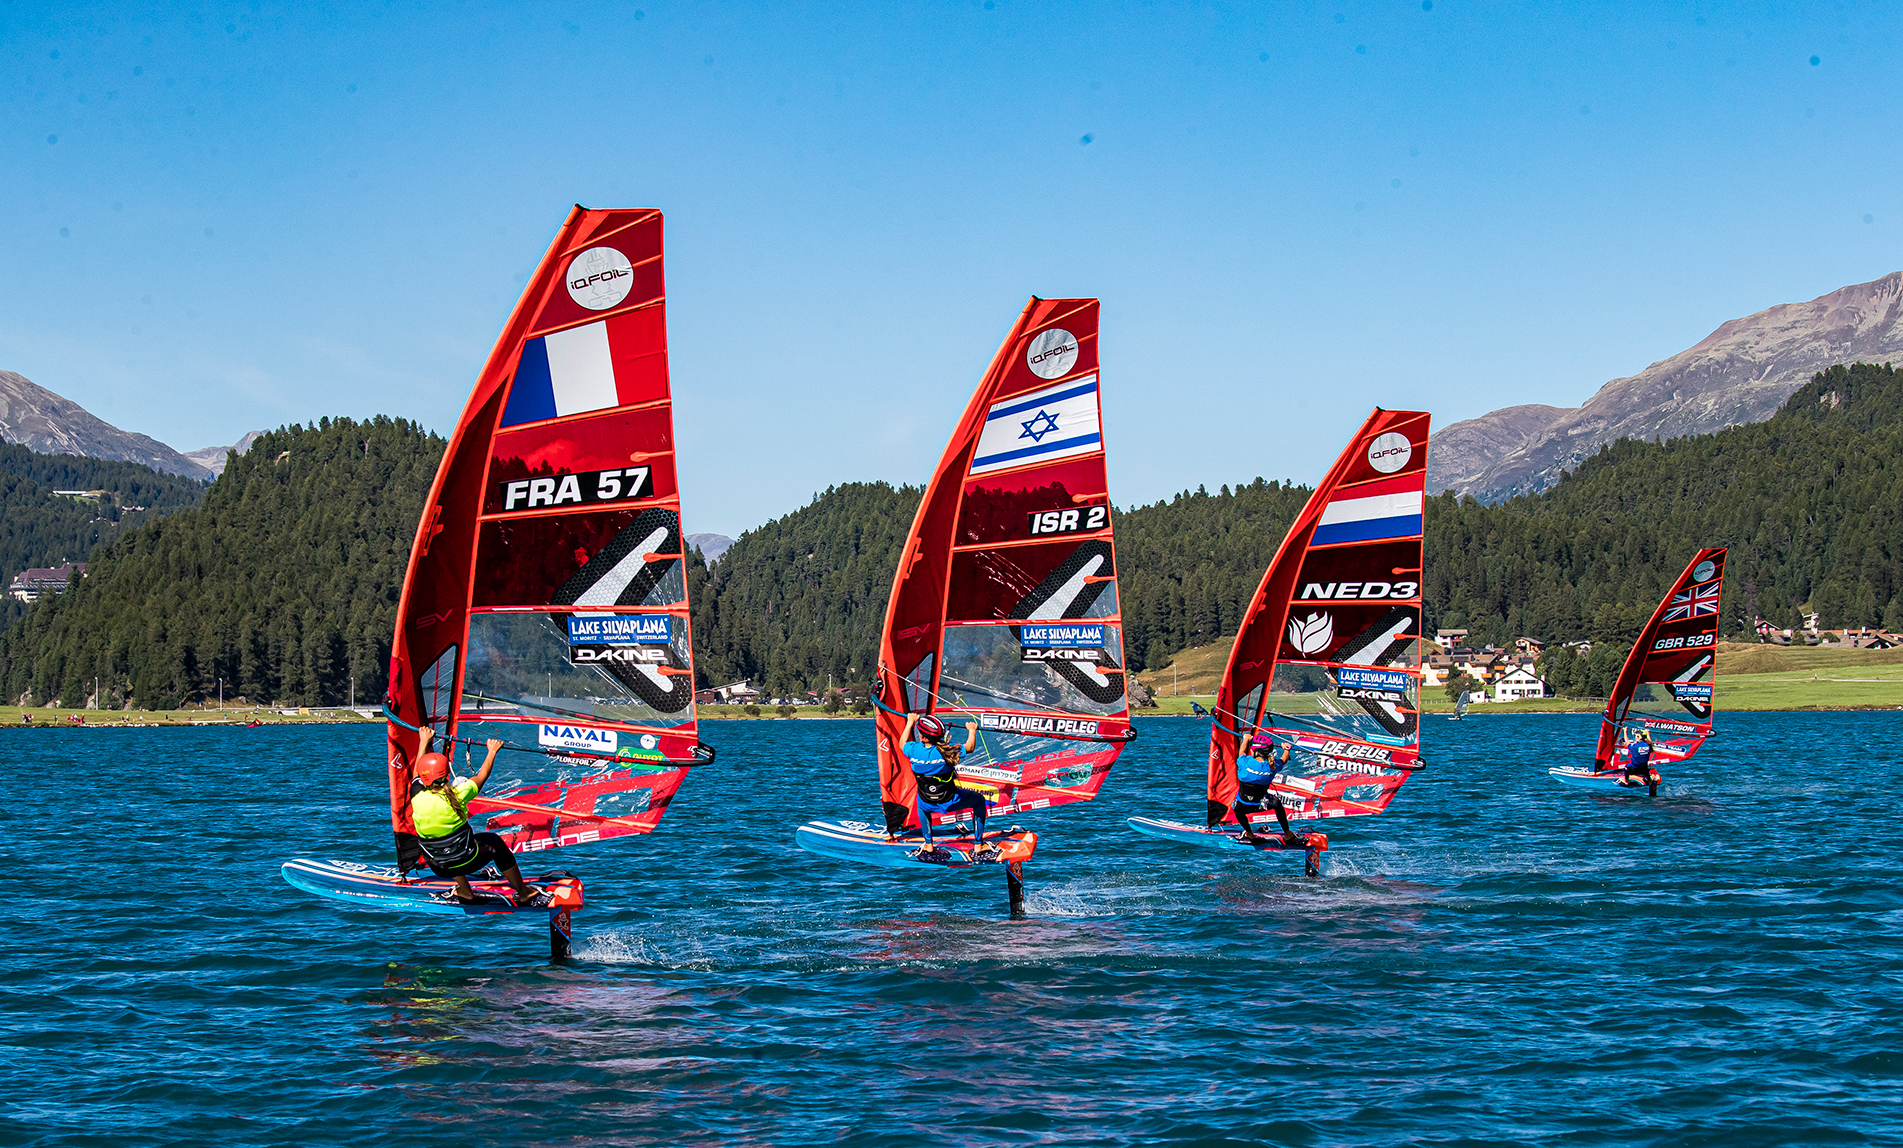 Starboard (THA), the leading manufacturer of Stand Up Paddleboards and windsurf boards, including the iQFOiL, the Paris 2024 Olympic Men's and Women's Windsurfer Equipment, have won the 2020 World Sailing 11th Hour Racing Sustainability Award. Credit: Sailing Energy / Engadinwind 2020